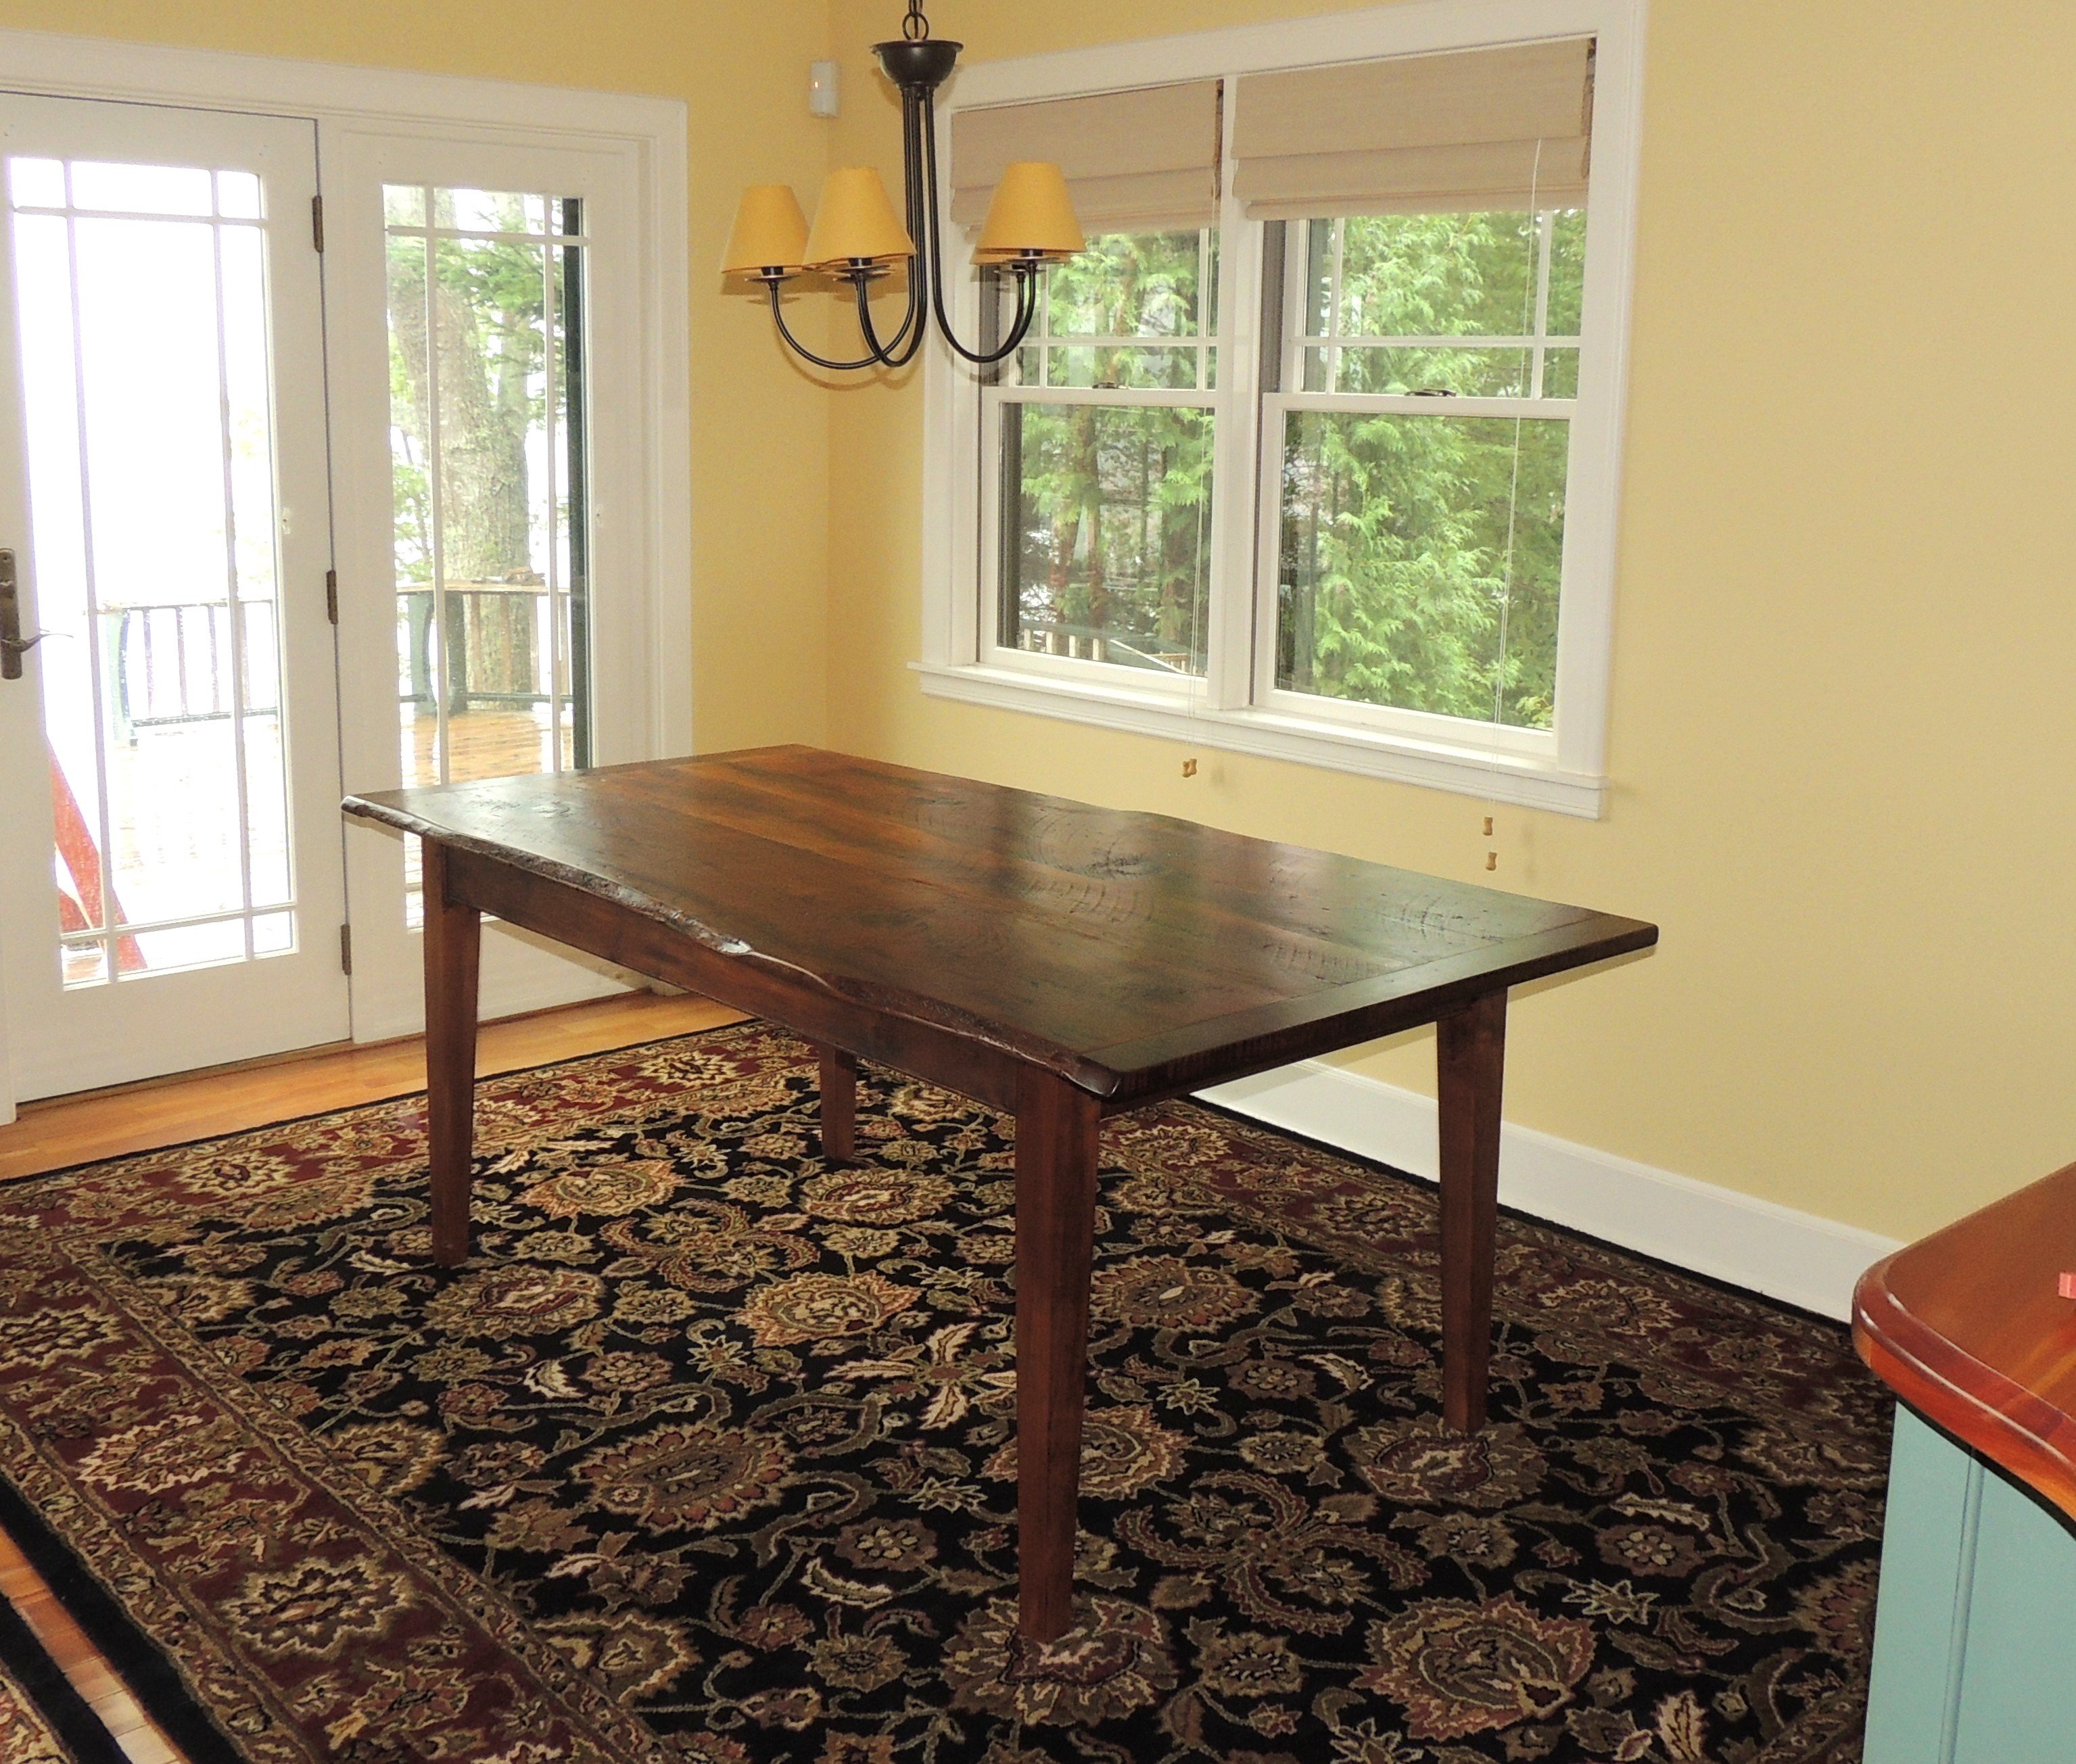 Small custom dining table #3B